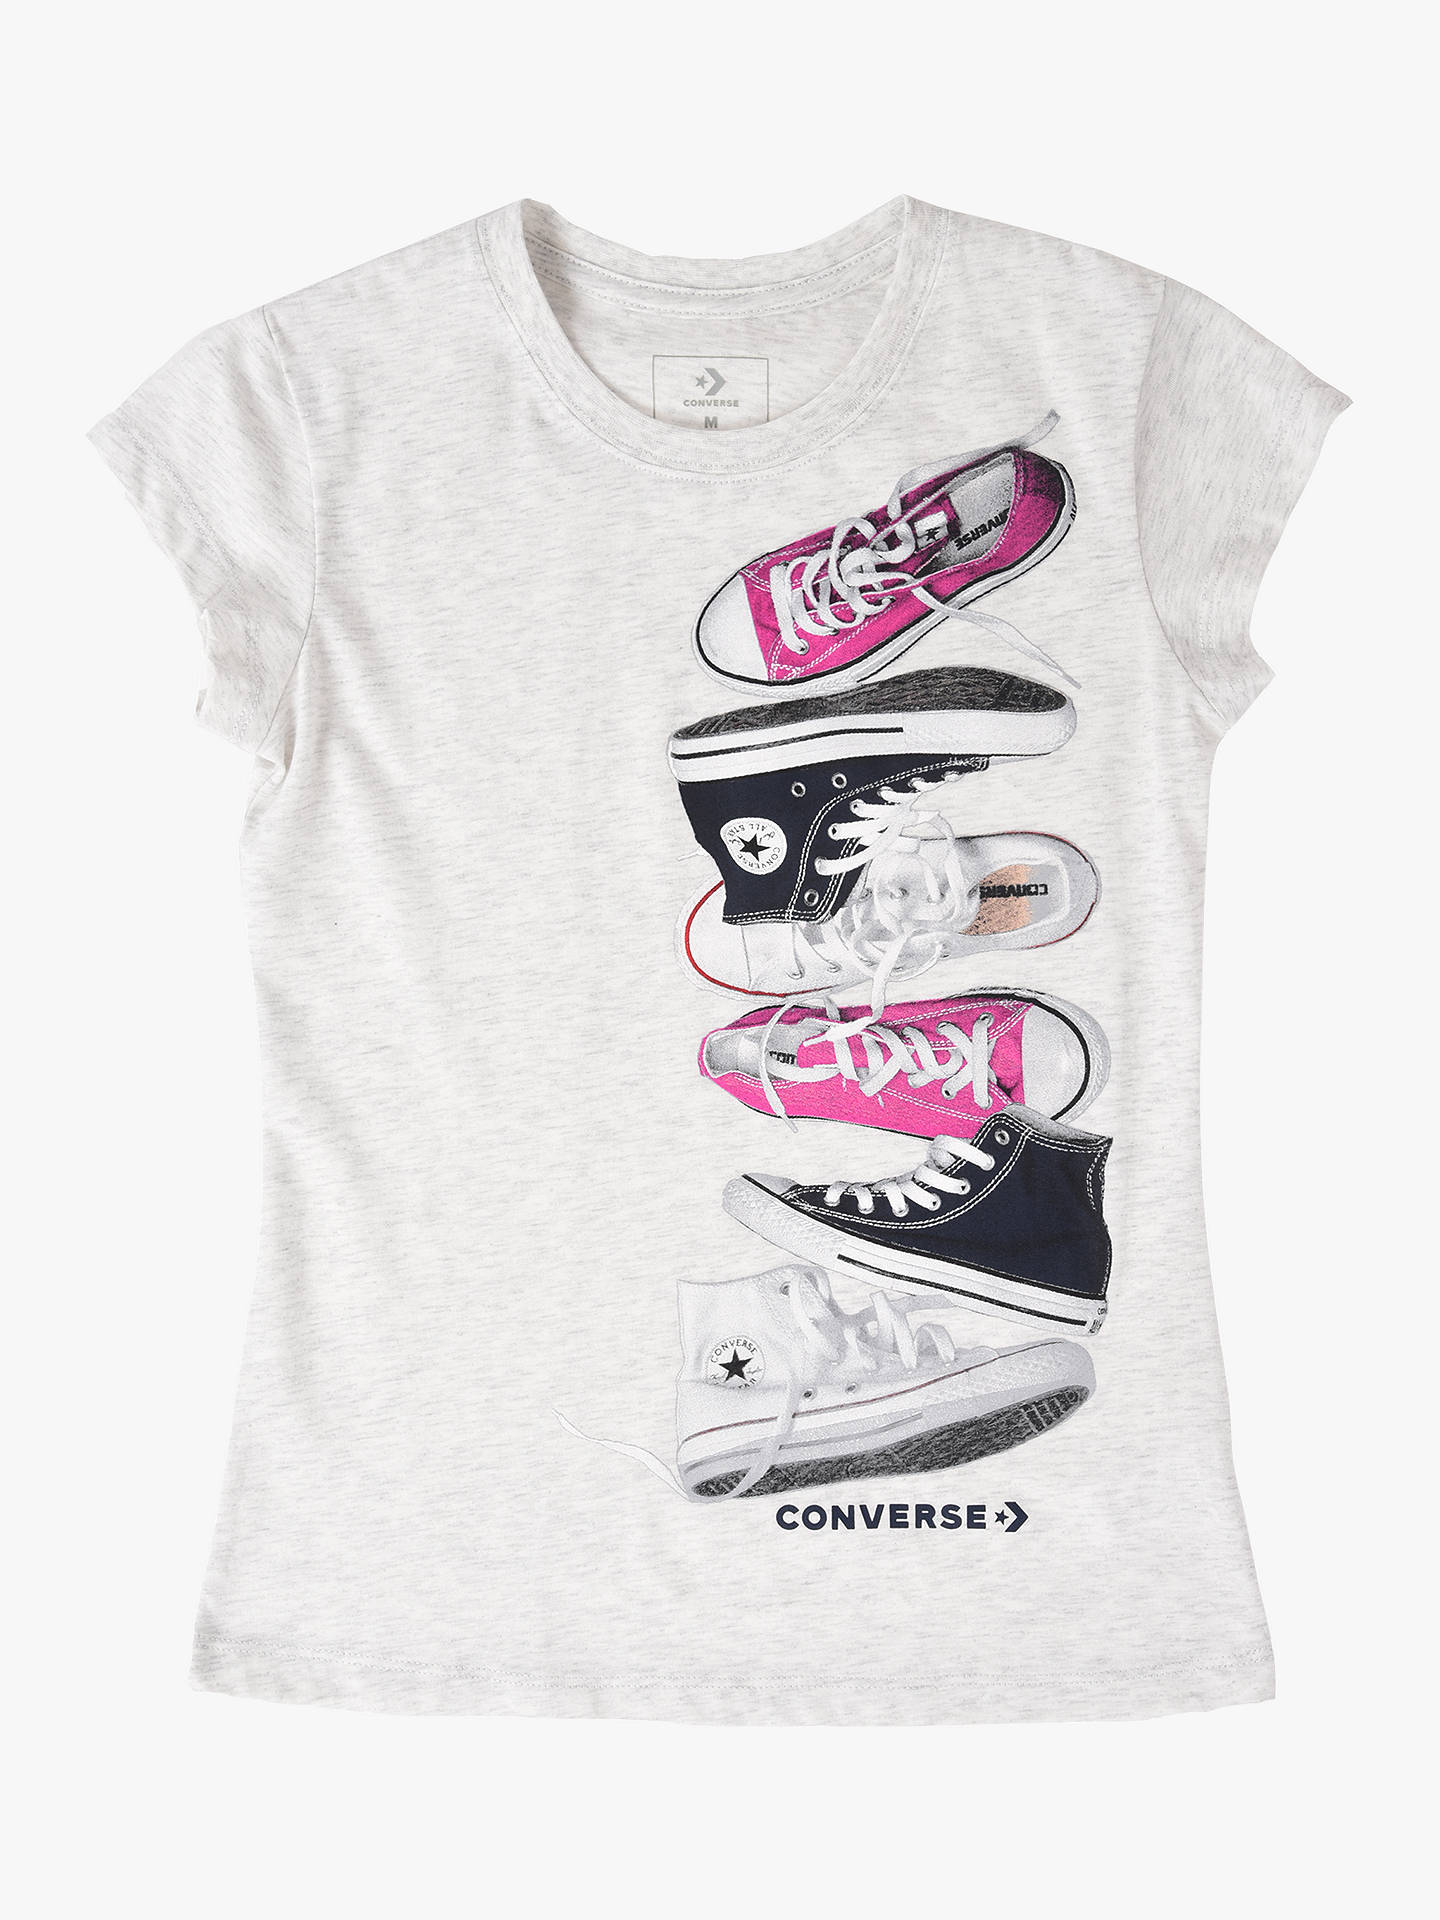 45f5cee6e119 Buy Converse Girls  Shoe Print T-Shirt